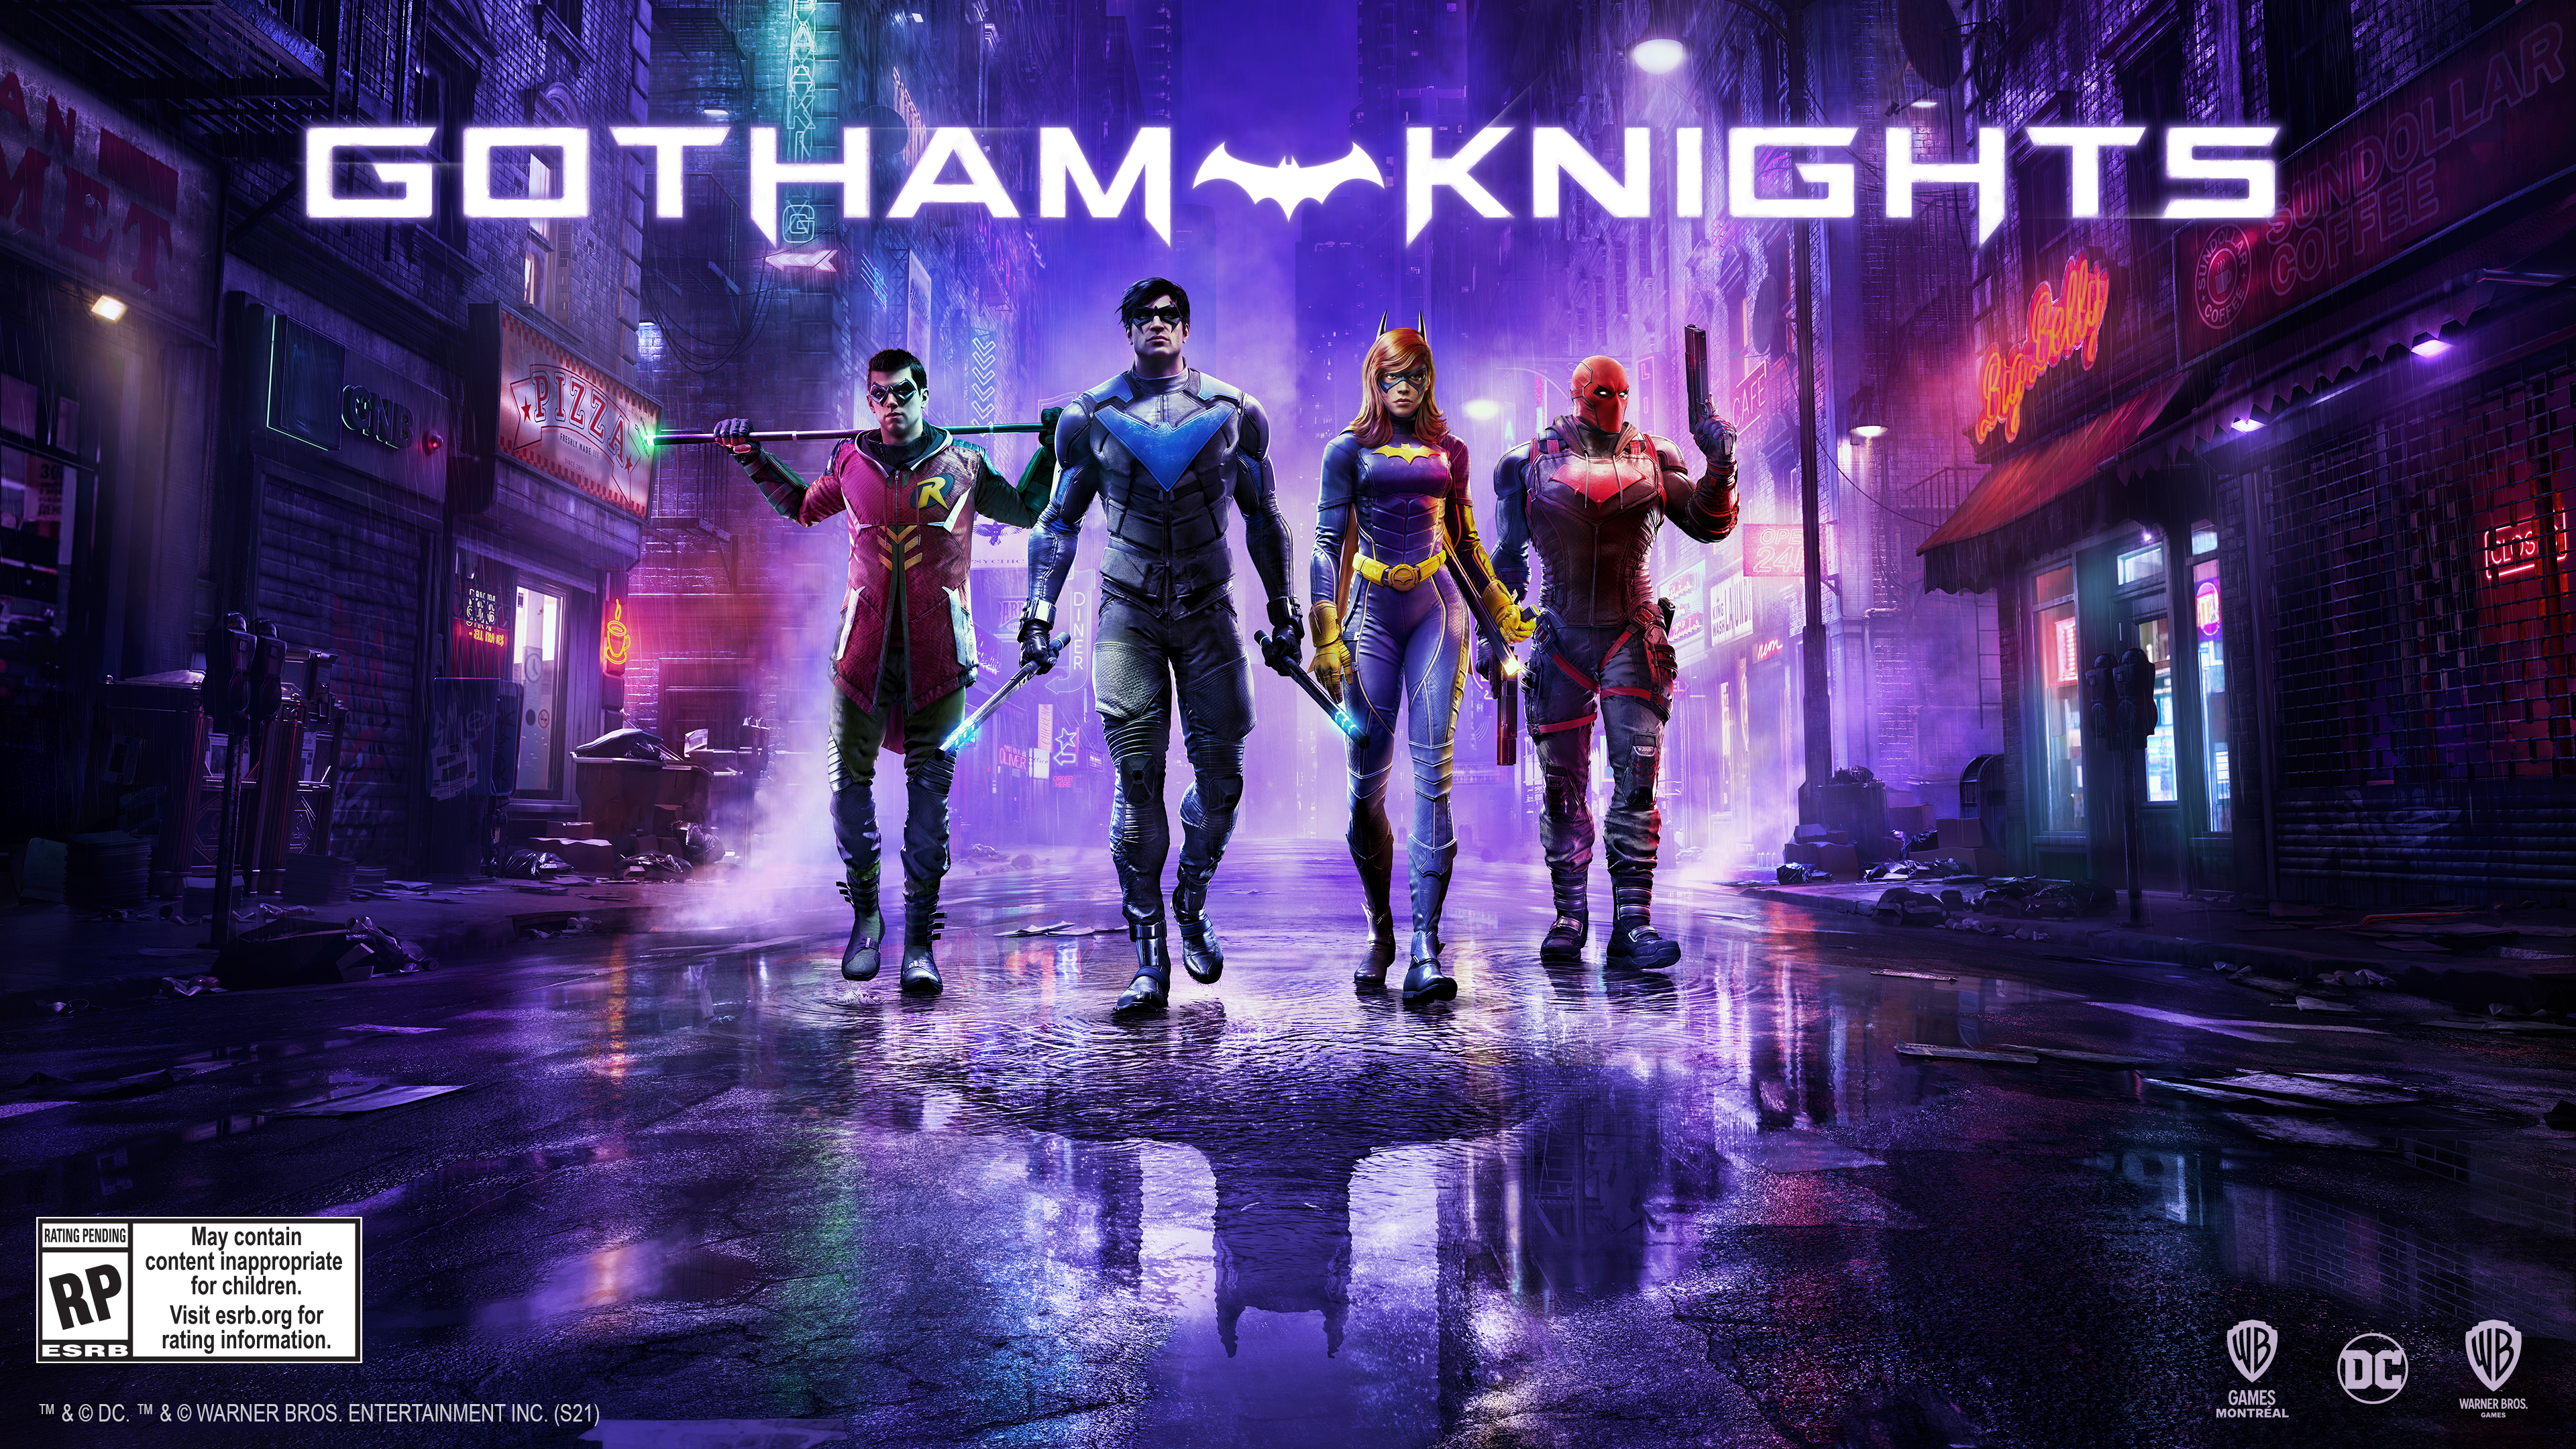 GOTHAM KNIGHTS, DC, WB GAMES, RED HOOD, NIGHT WING, COURT OF OWLS